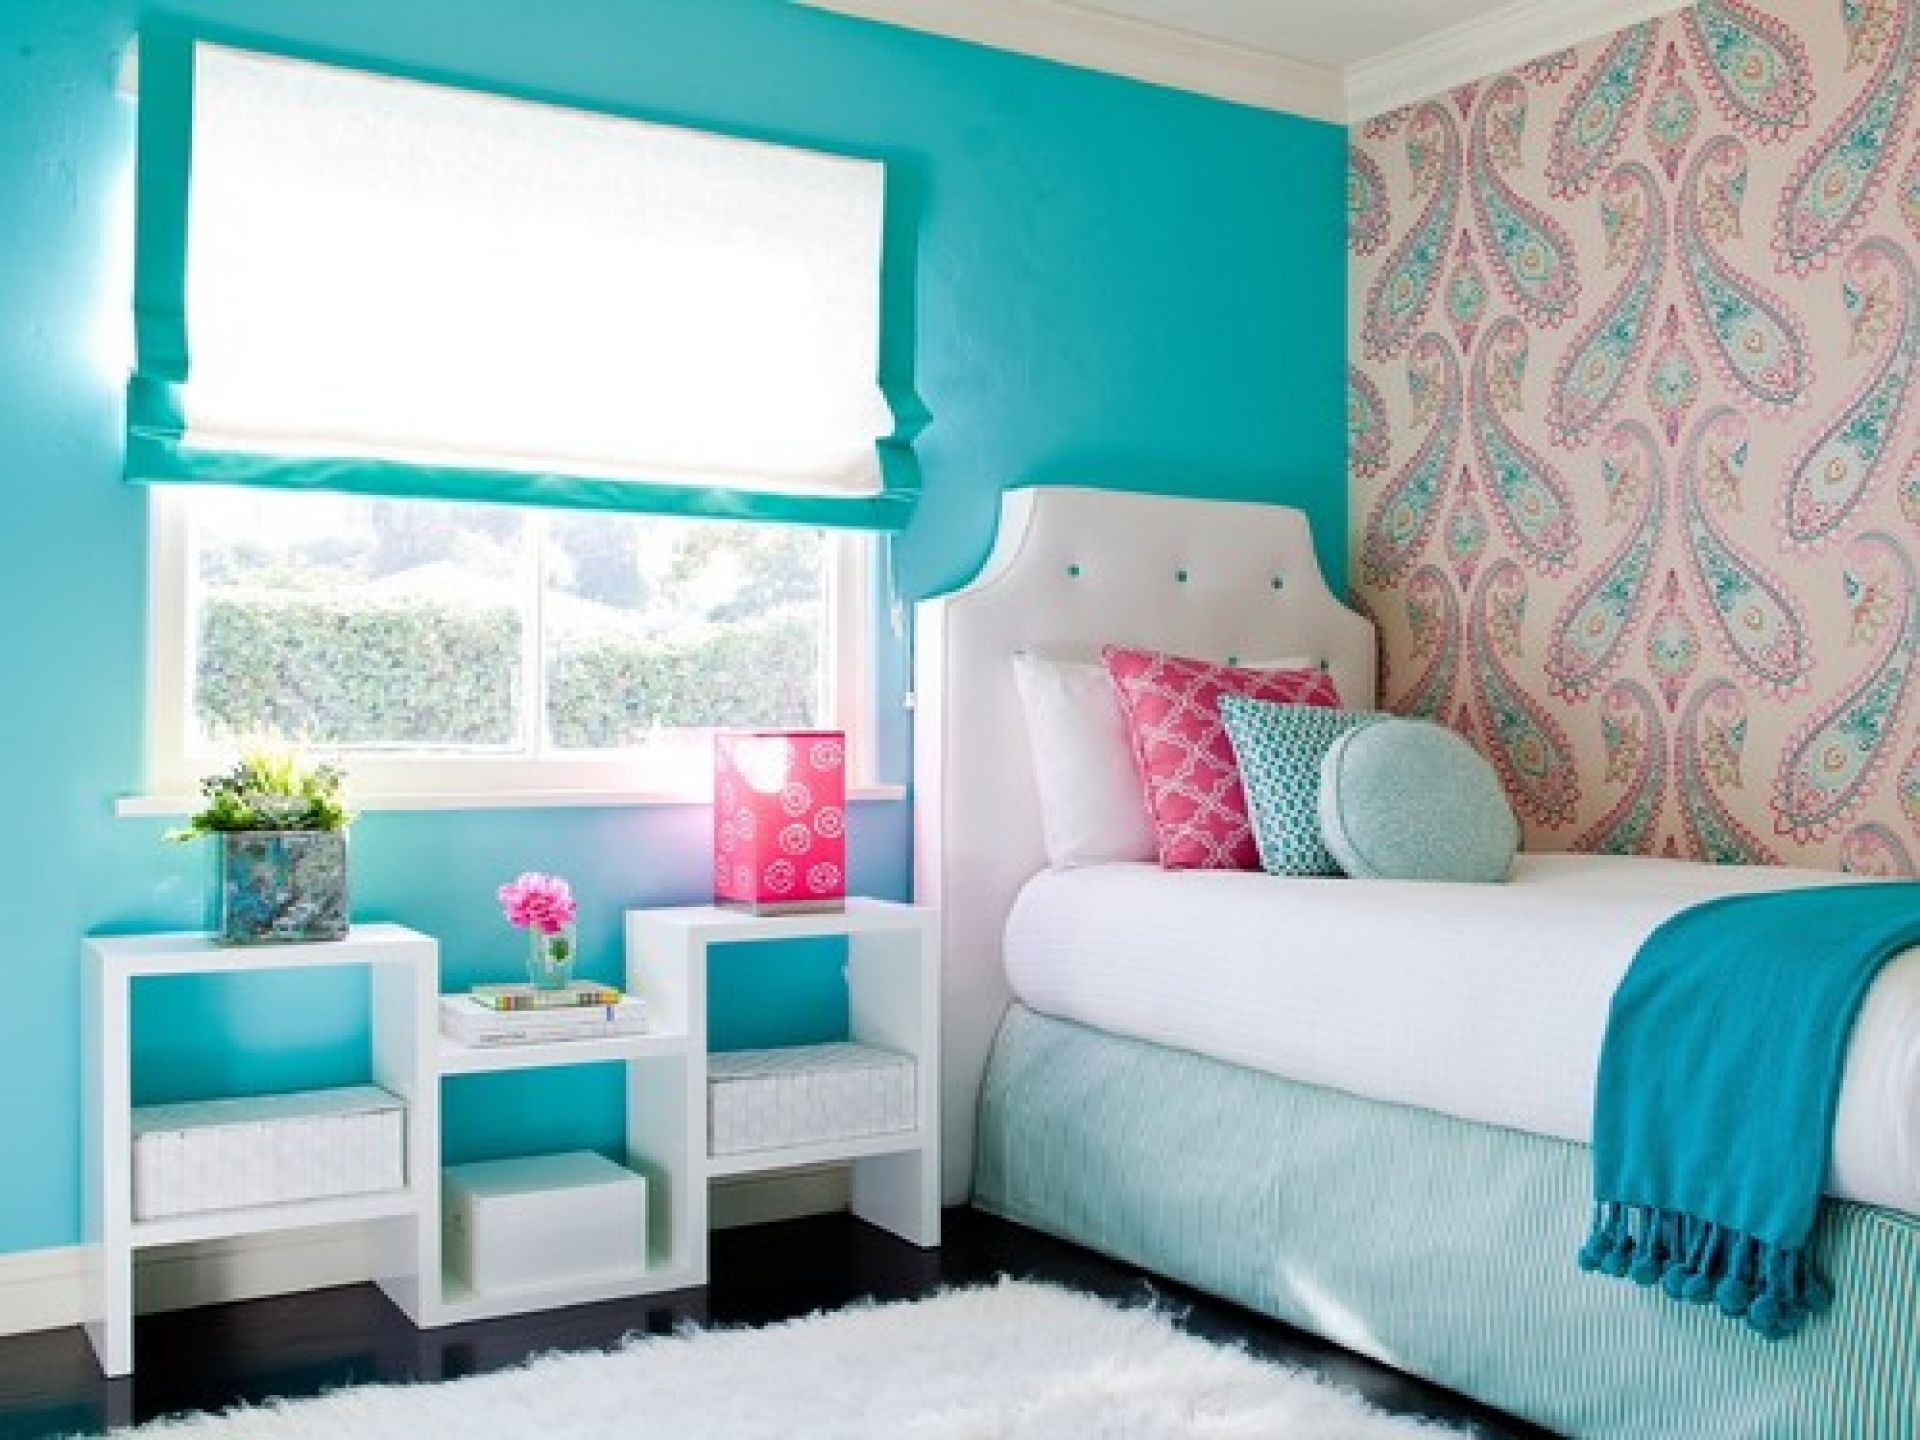 Simple design comfy room colors teenage girl bedroom wall paint ideas colors for bedrooms for - Teenage girls rooms ...